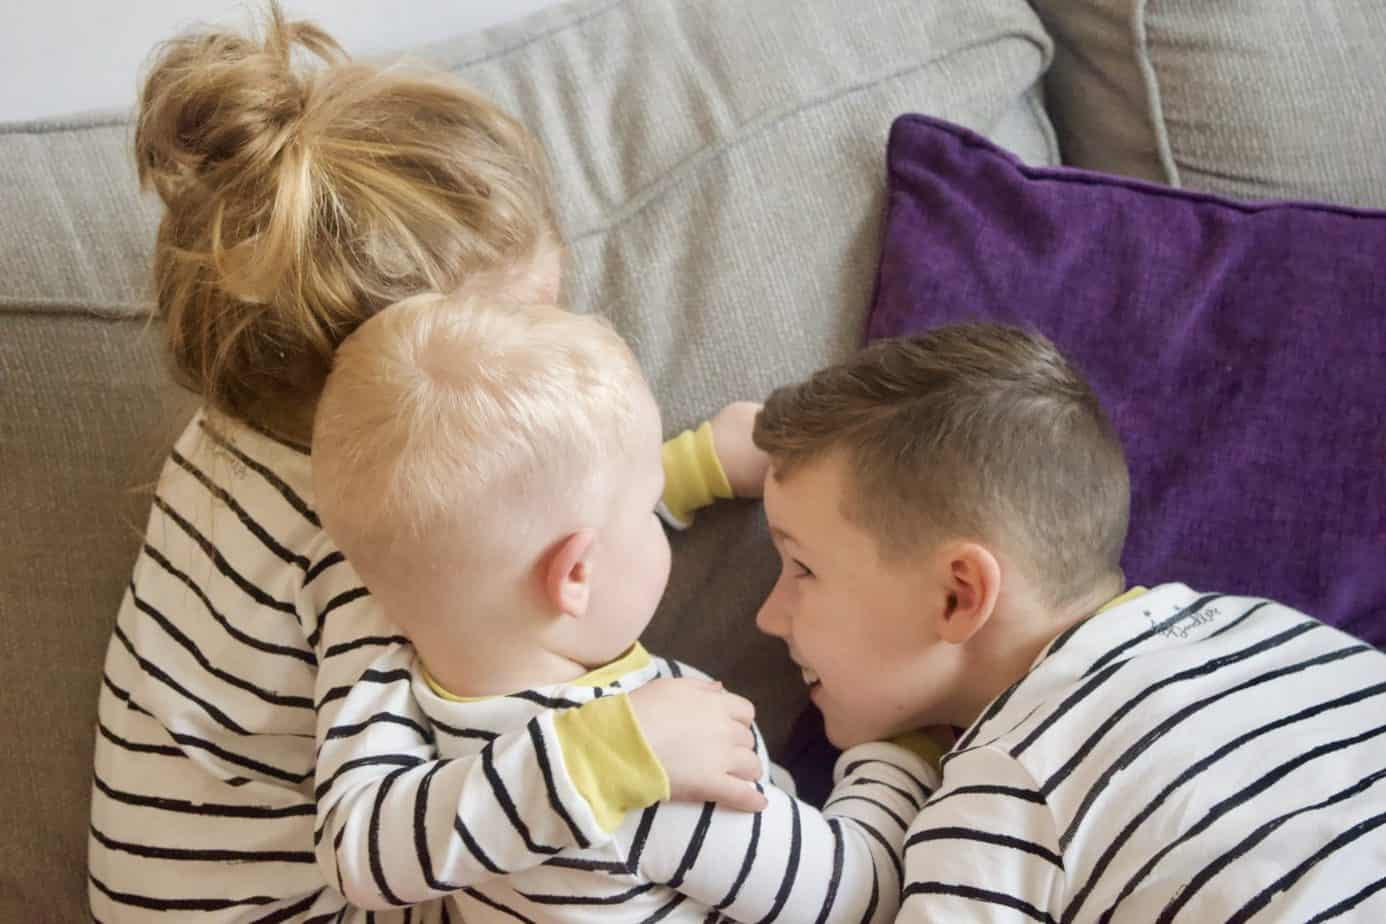 All three kids facing away from the camera wearing their jammie doodle pyjamas